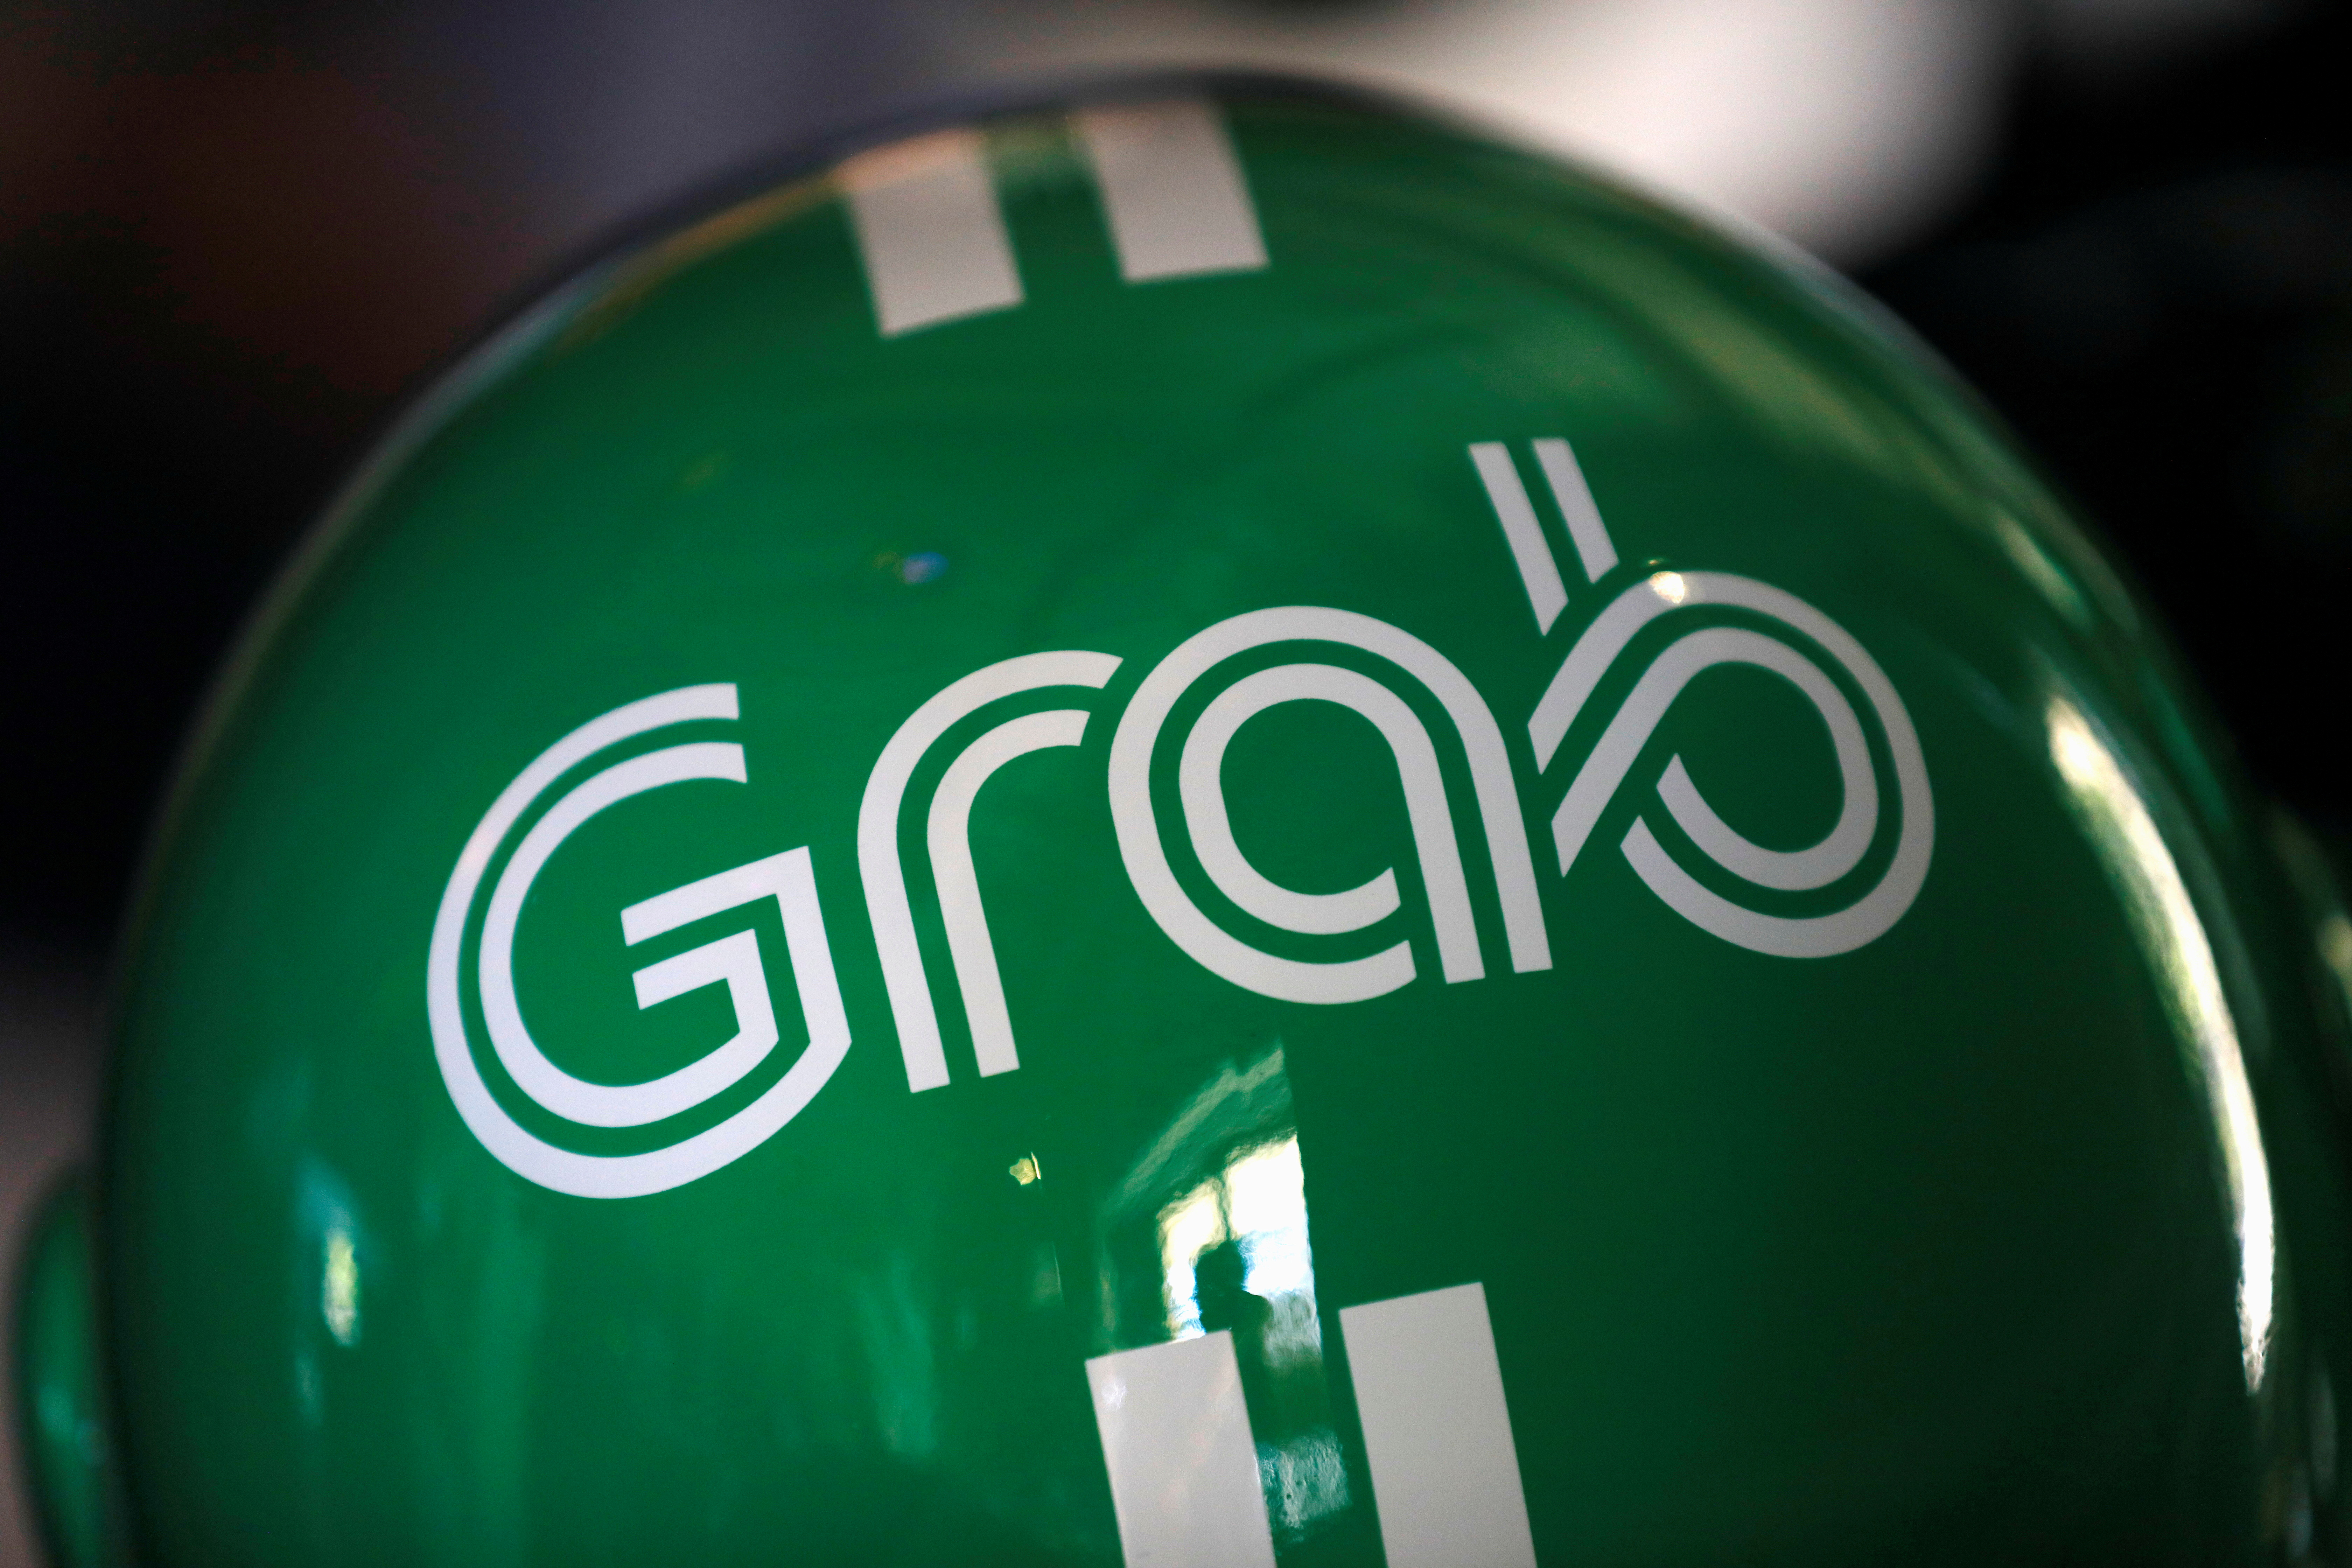 A Grab motorbike helmet is displayed during Grab's fifth anniversary news conference in Singapore June 6, 2017. REUTERS/Edgar Su/File Photo